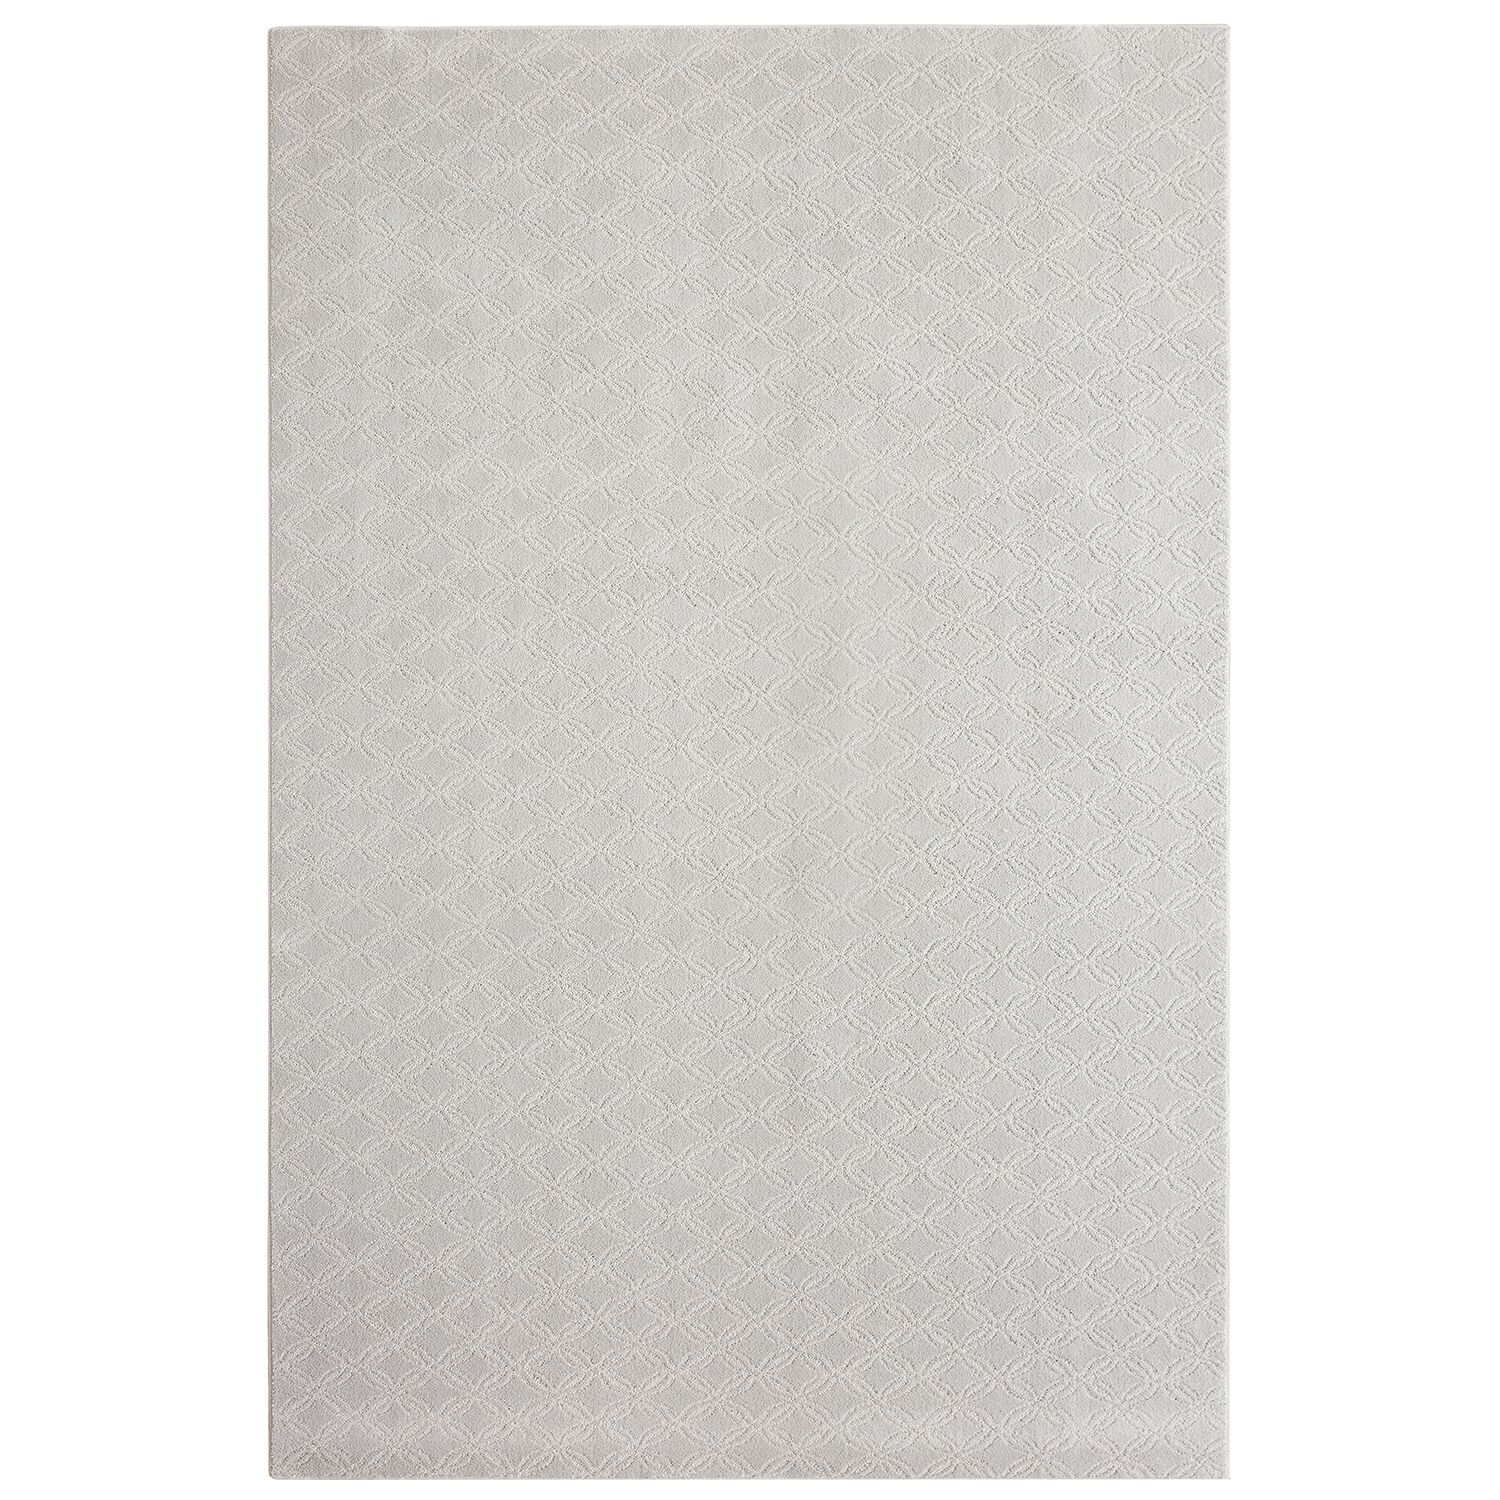 Bettie Hand-Tufted Gray Area Rug Rug Size: Rectangle 6' x 9'